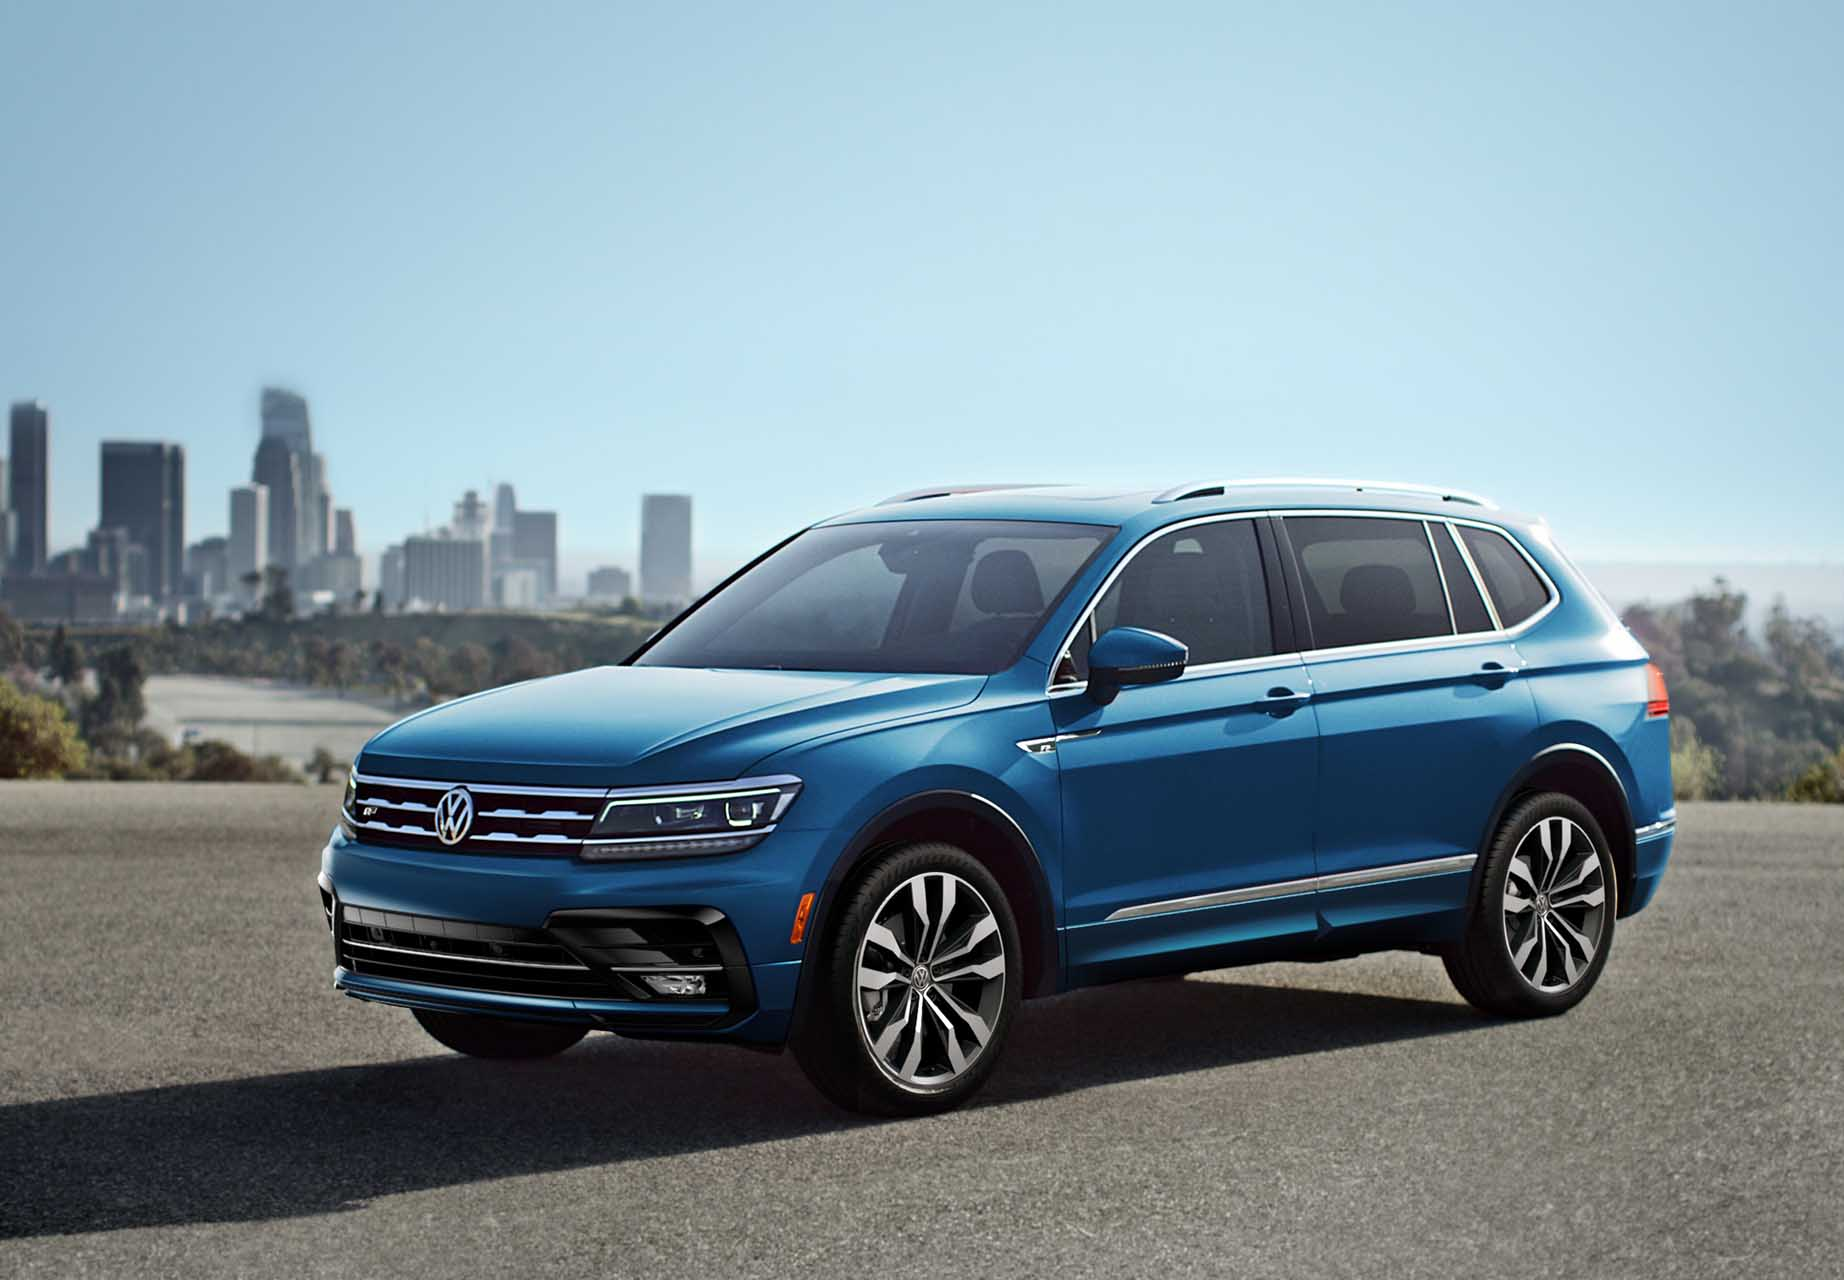 2021 Volkswagen Tiguan Vw Review Ratings Specs Prices And Photos The Car Connection